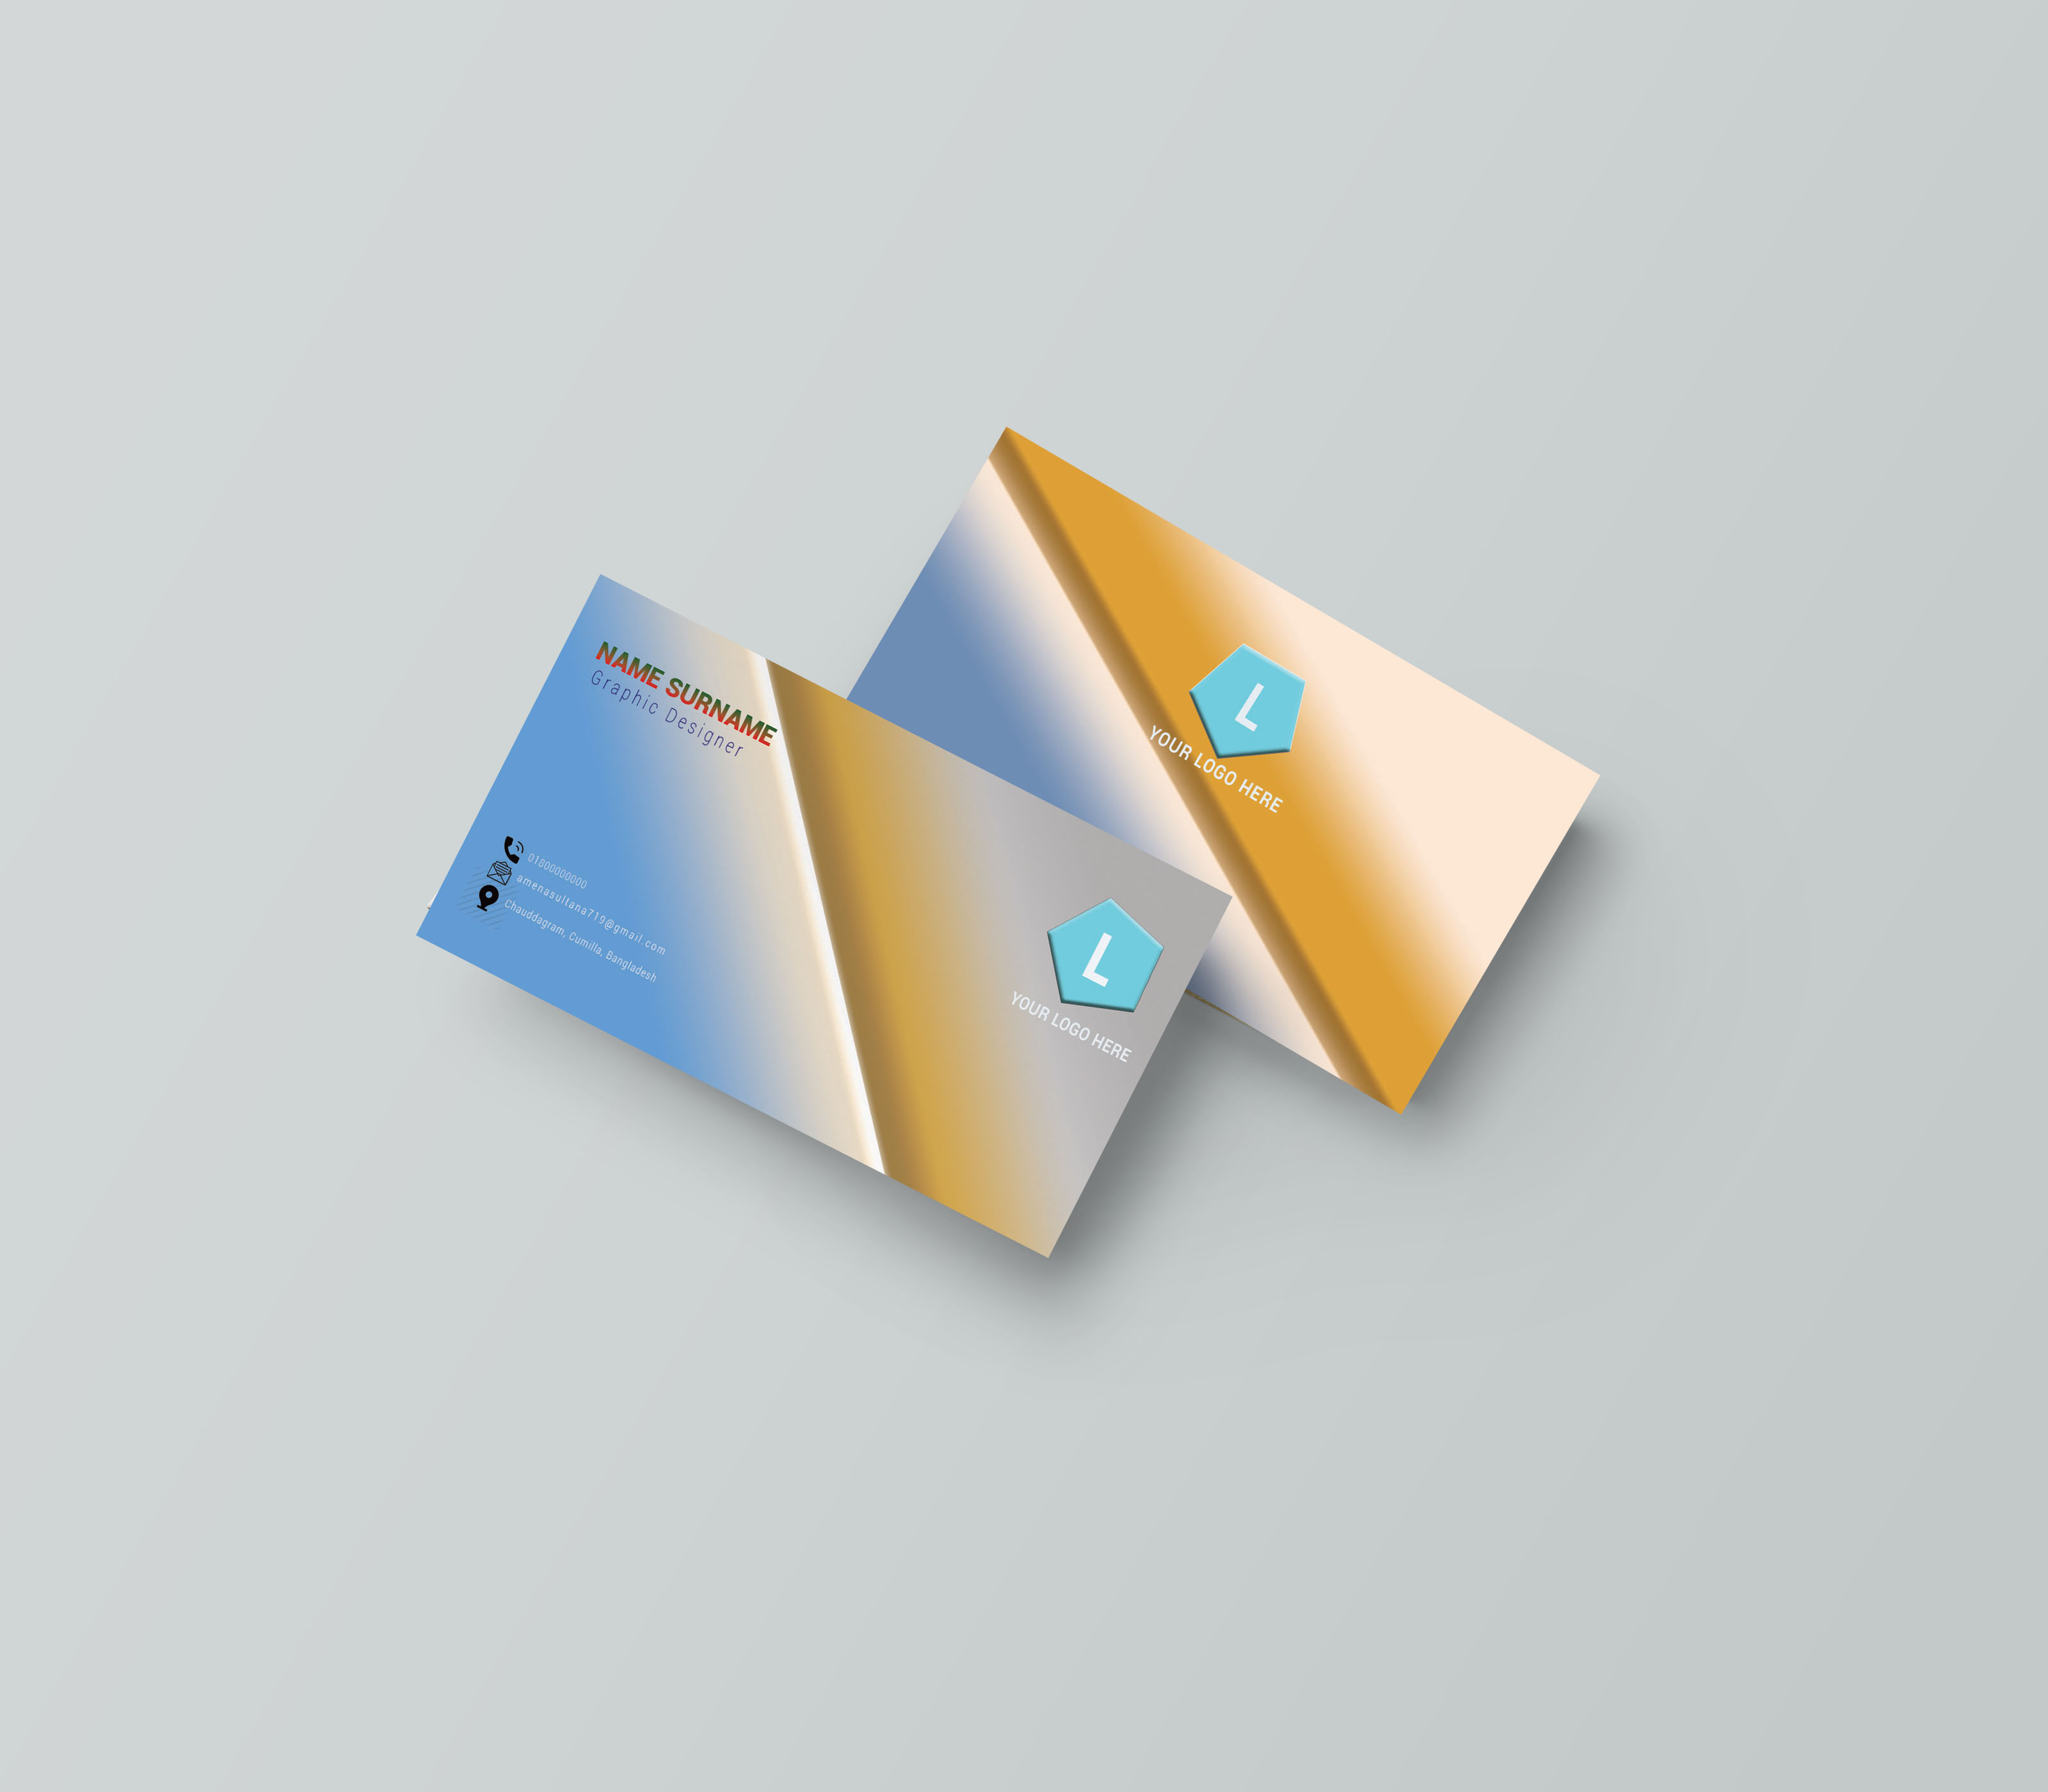 I will design modern,  minimalist and professional business cards